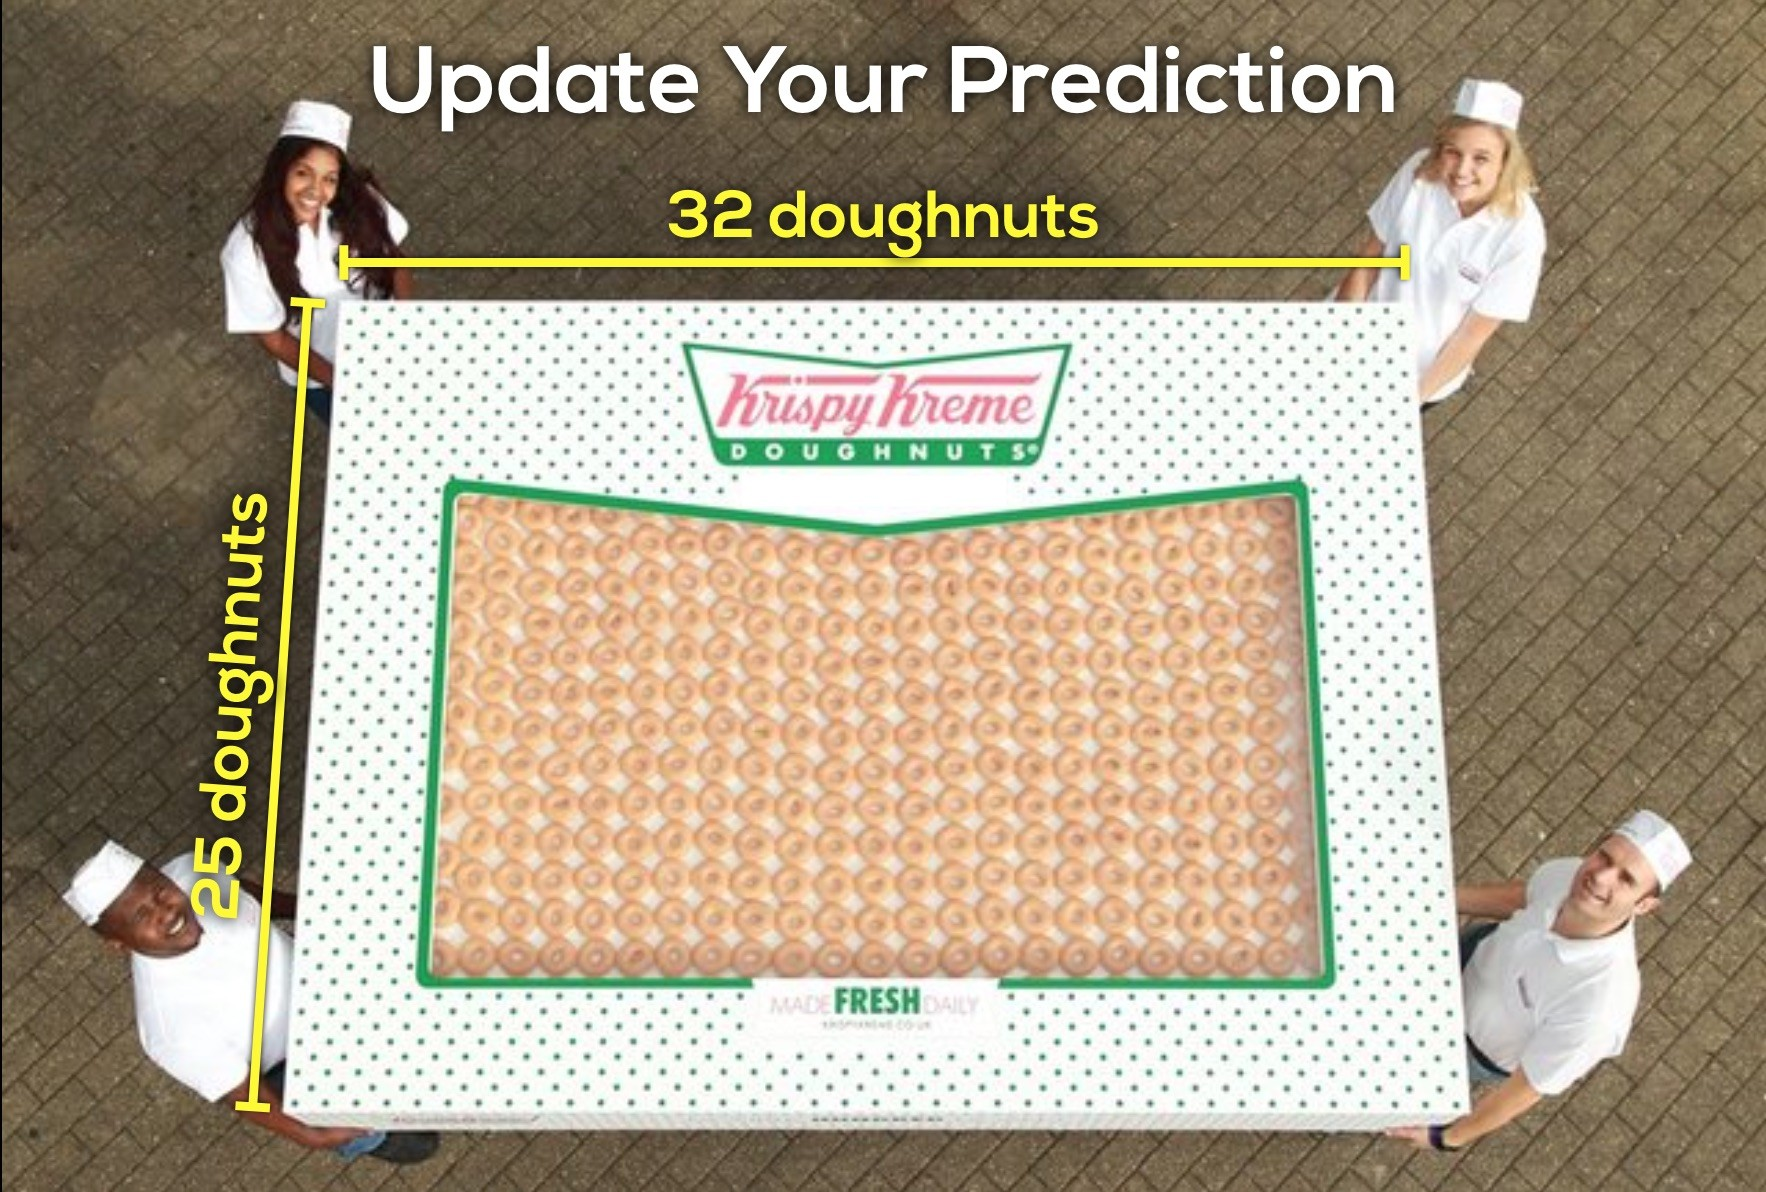 what are the key elements of krispy kreme s strategic philosophy Doughnut wars: krispy kreme vs it's not necessarily going to have the fad element that krispy kreme had source who leaked cohen financial info claims key.